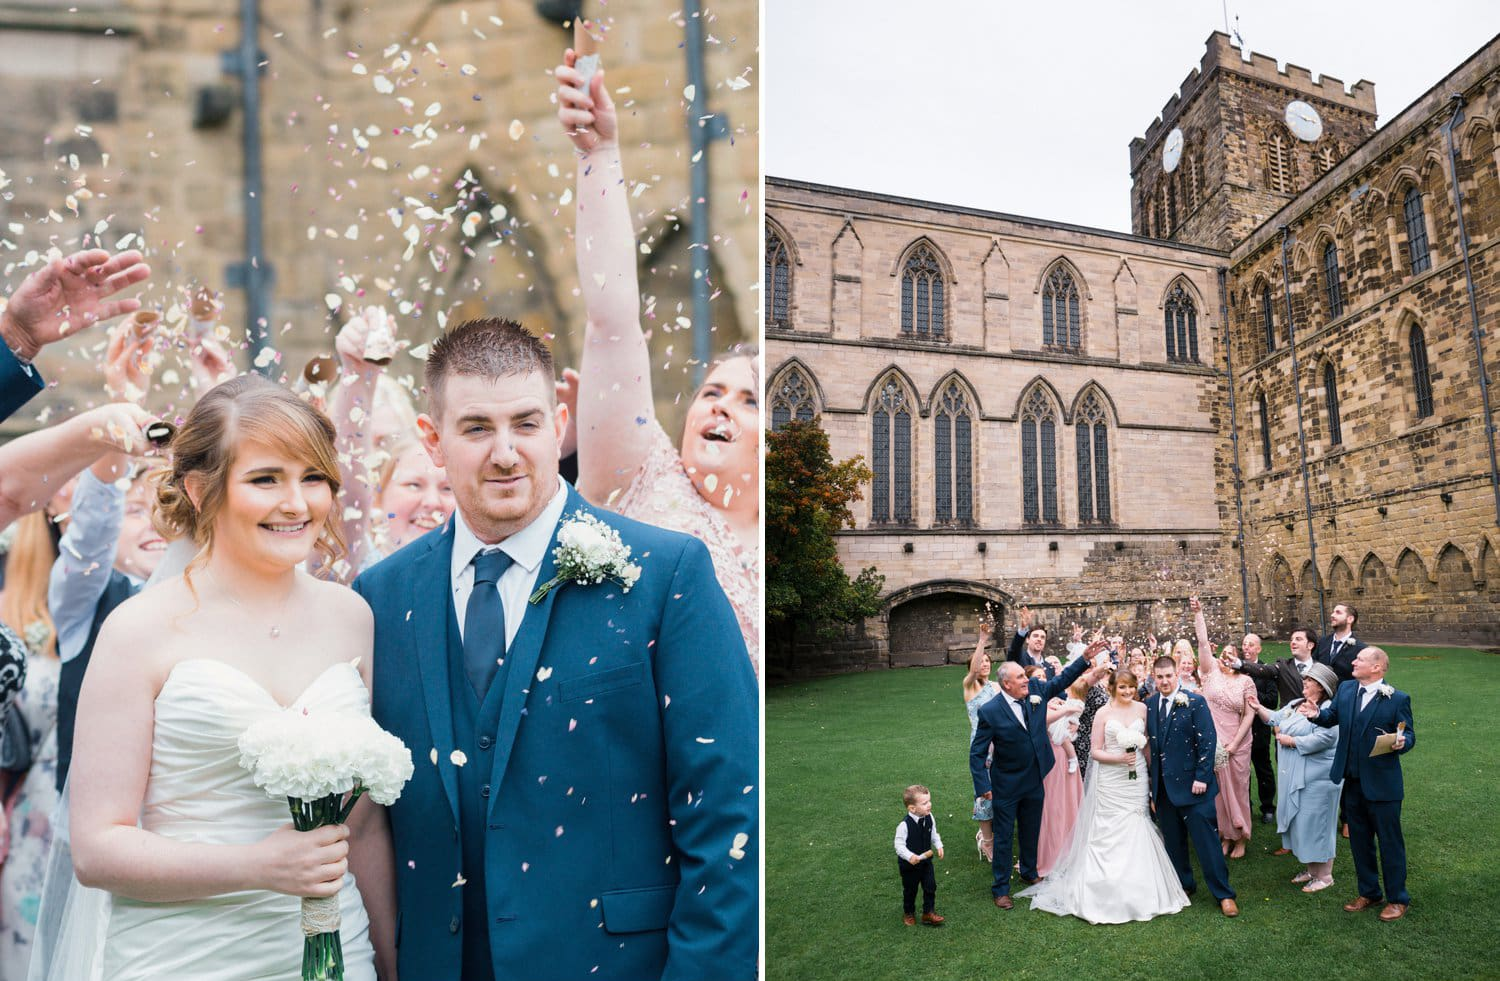 Hexham Abbey Wedding, confetti